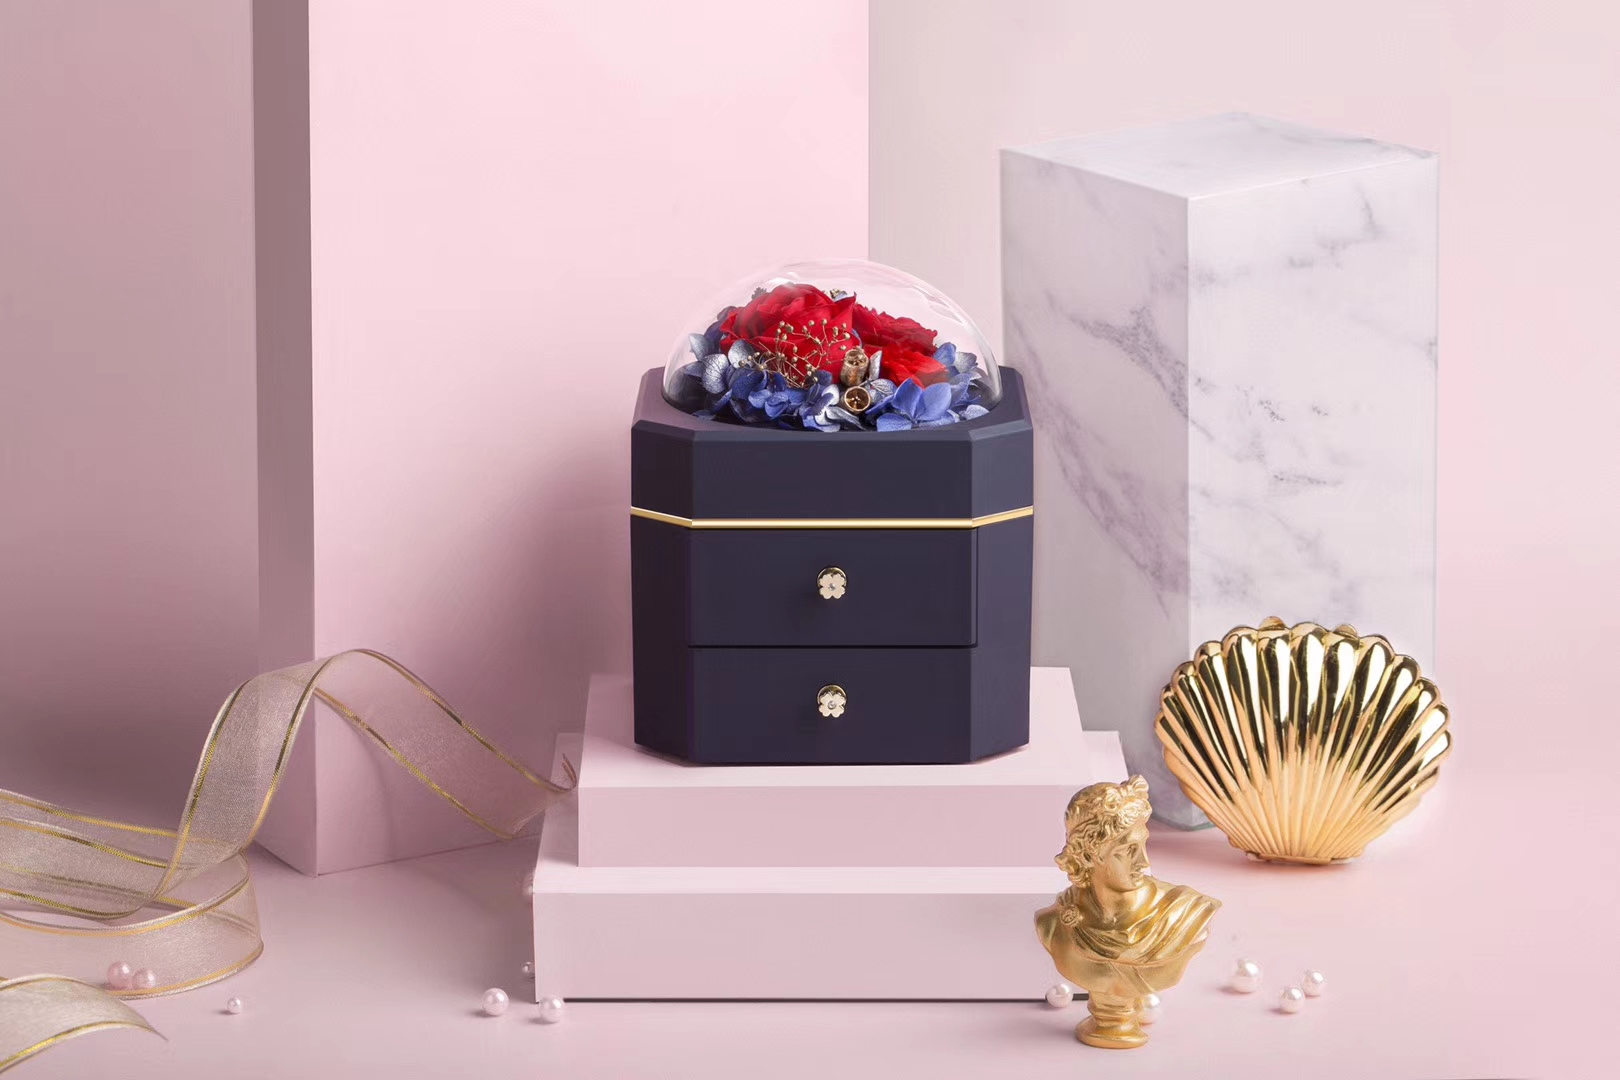 ZTB-127 New design and patented jewelry gift box with flower for 2020